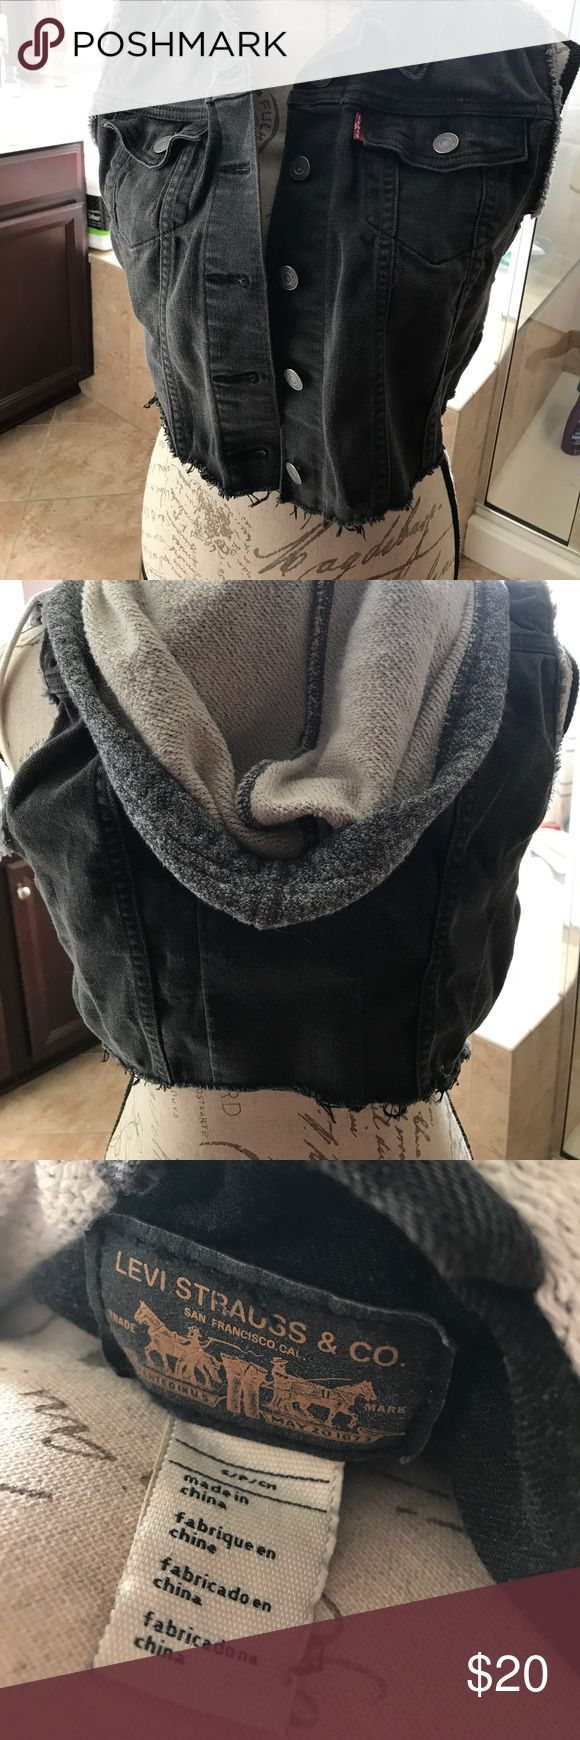 Levi's Sleeveless Hooded Jean Jacket I'm a Crossfitter and it simply doesn't fit me anymore. Levi's Jackets & Coats Vests